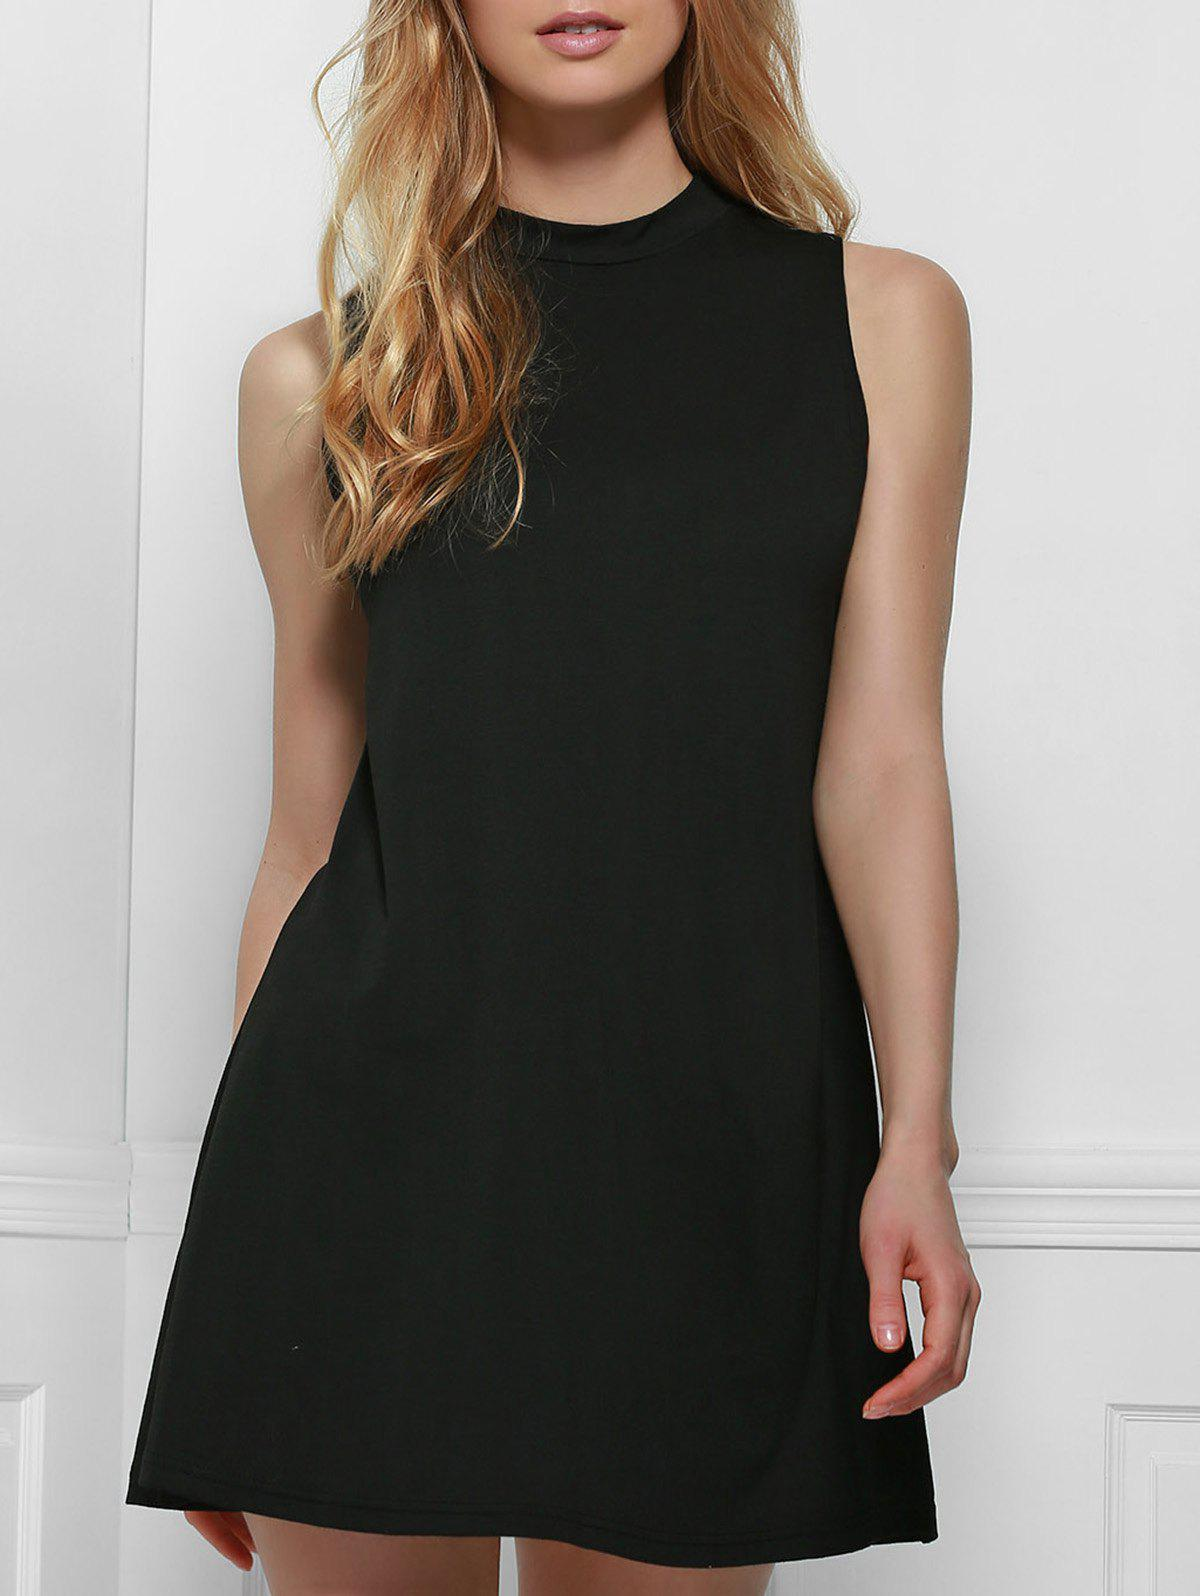 Simple Style Solid Color Stand Collar Tank Top Dress For Women - BLACK M